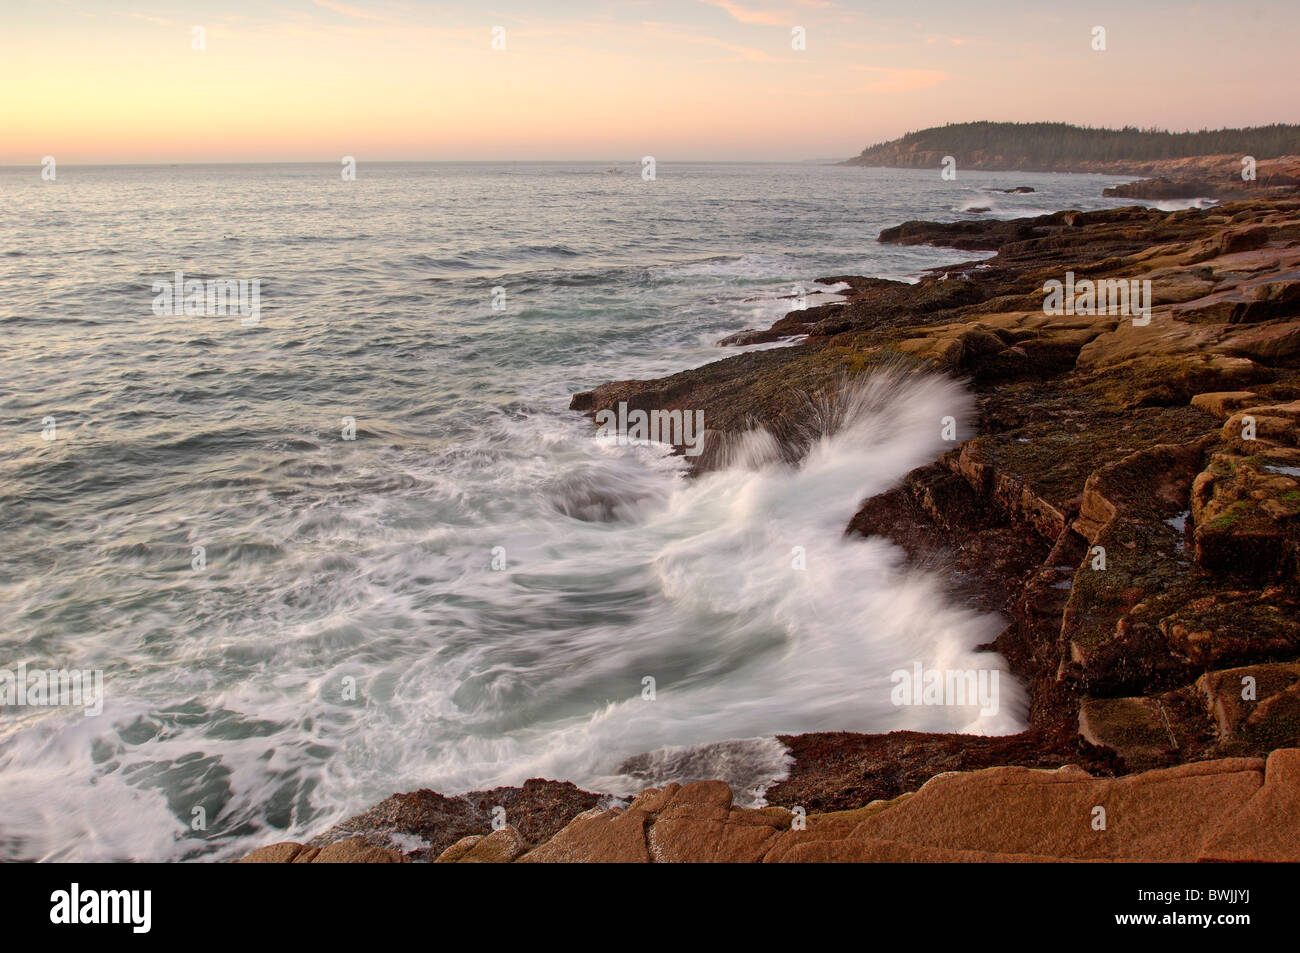 Thunder getting fetching Acadia scenery landscape coast surf sea dusk twilight mood coastal scenery nationa - Stock Image